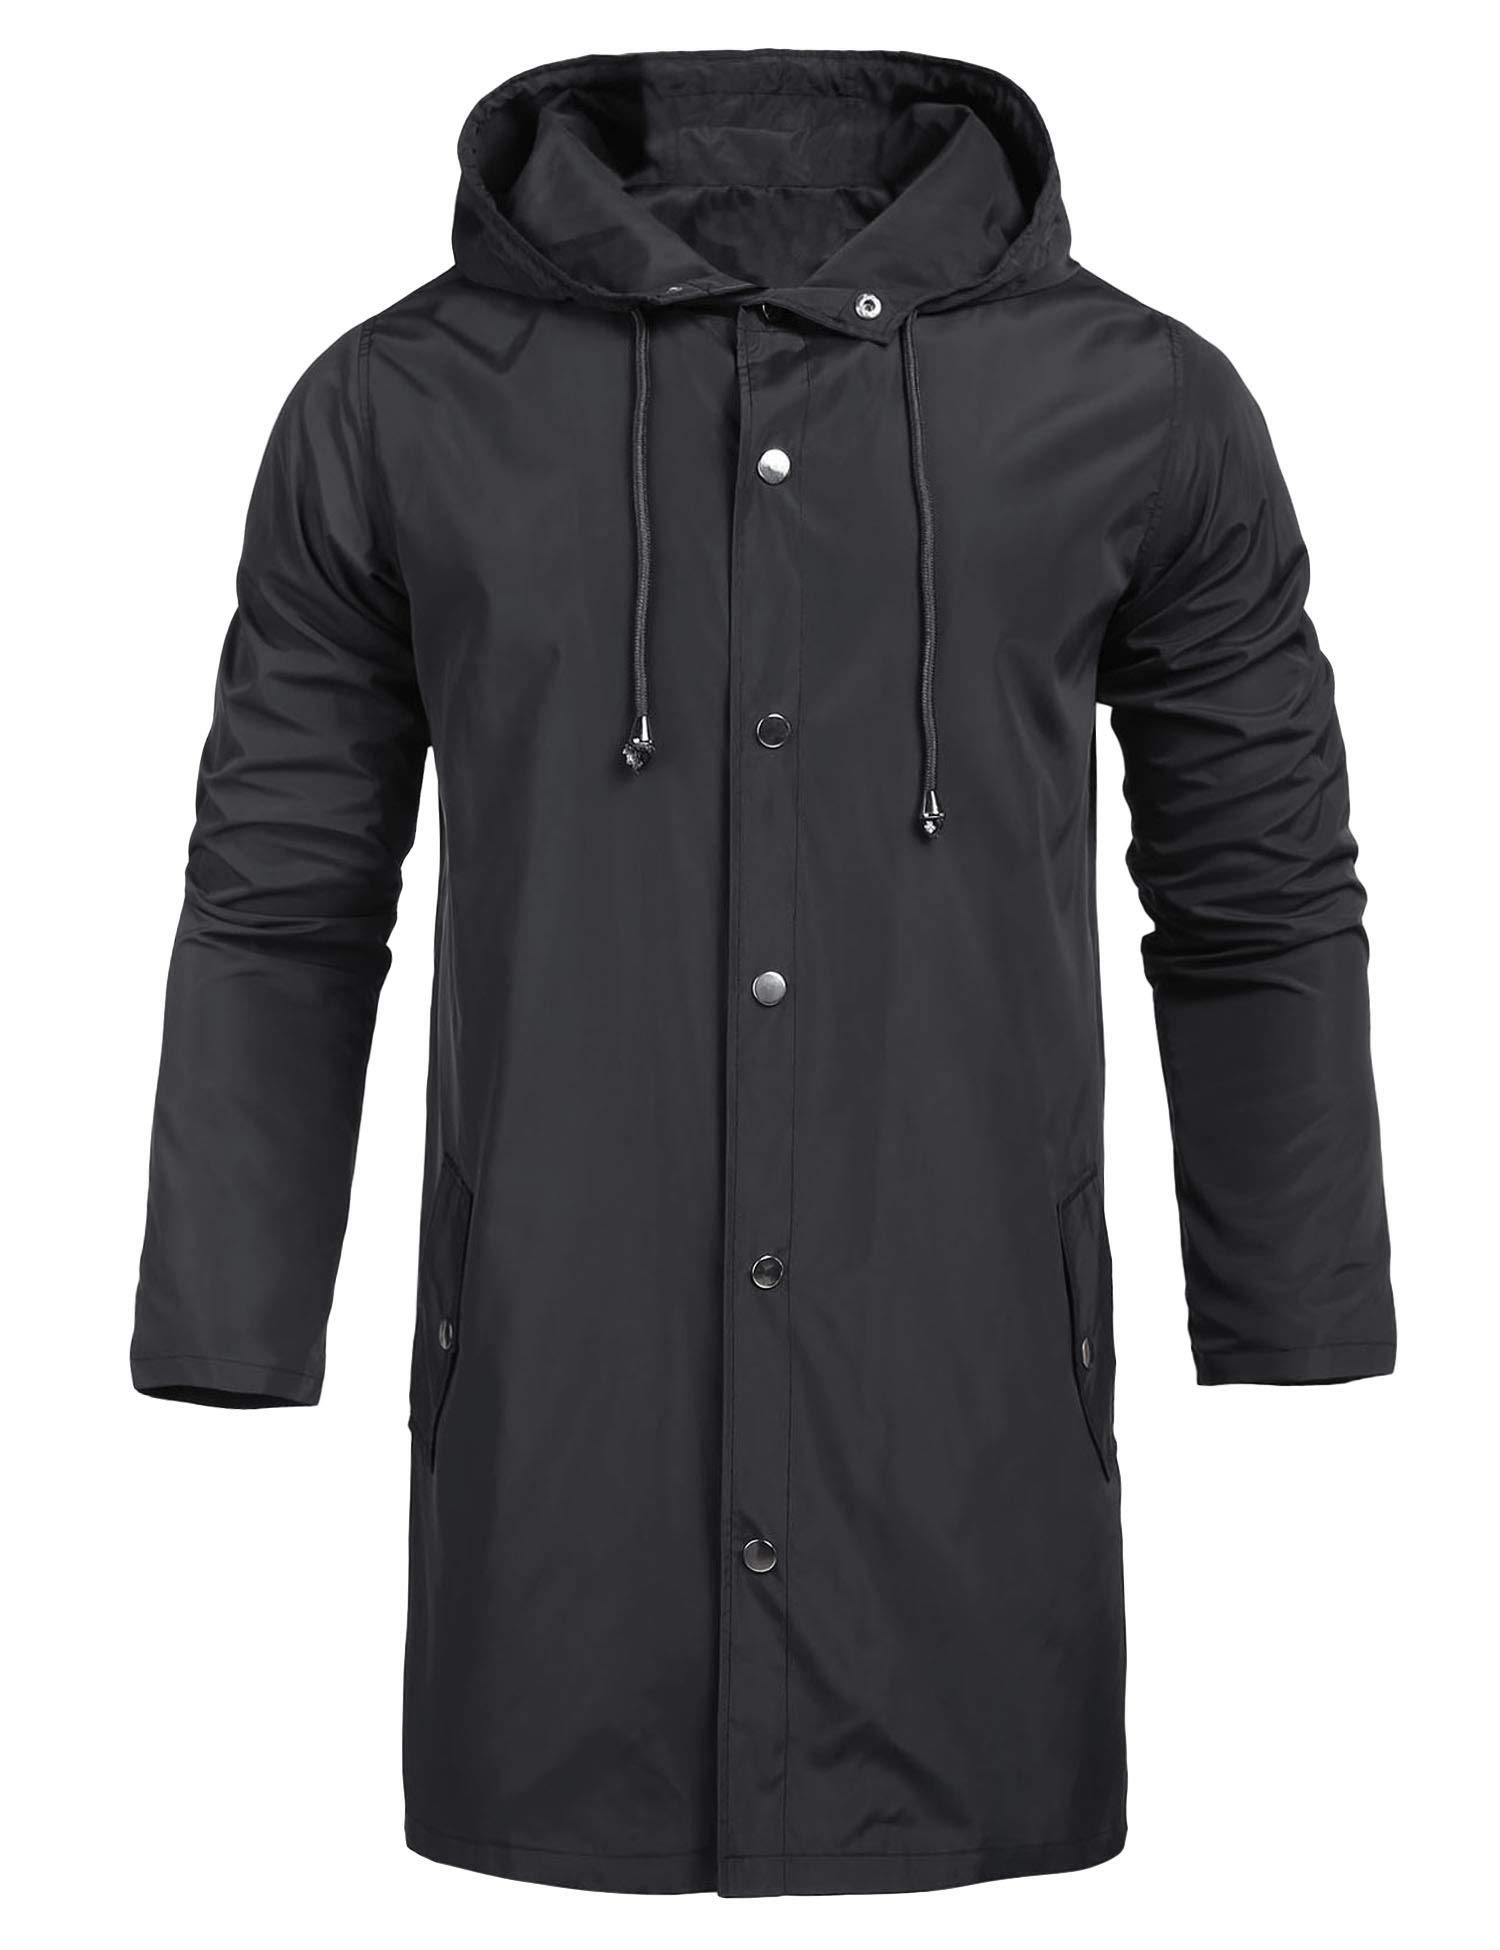 UUANG Mens Jacket Lightweight Windproof Raincoat Mens Waterproof with Hood Long for Any Outdoor Activities Black by UUANG